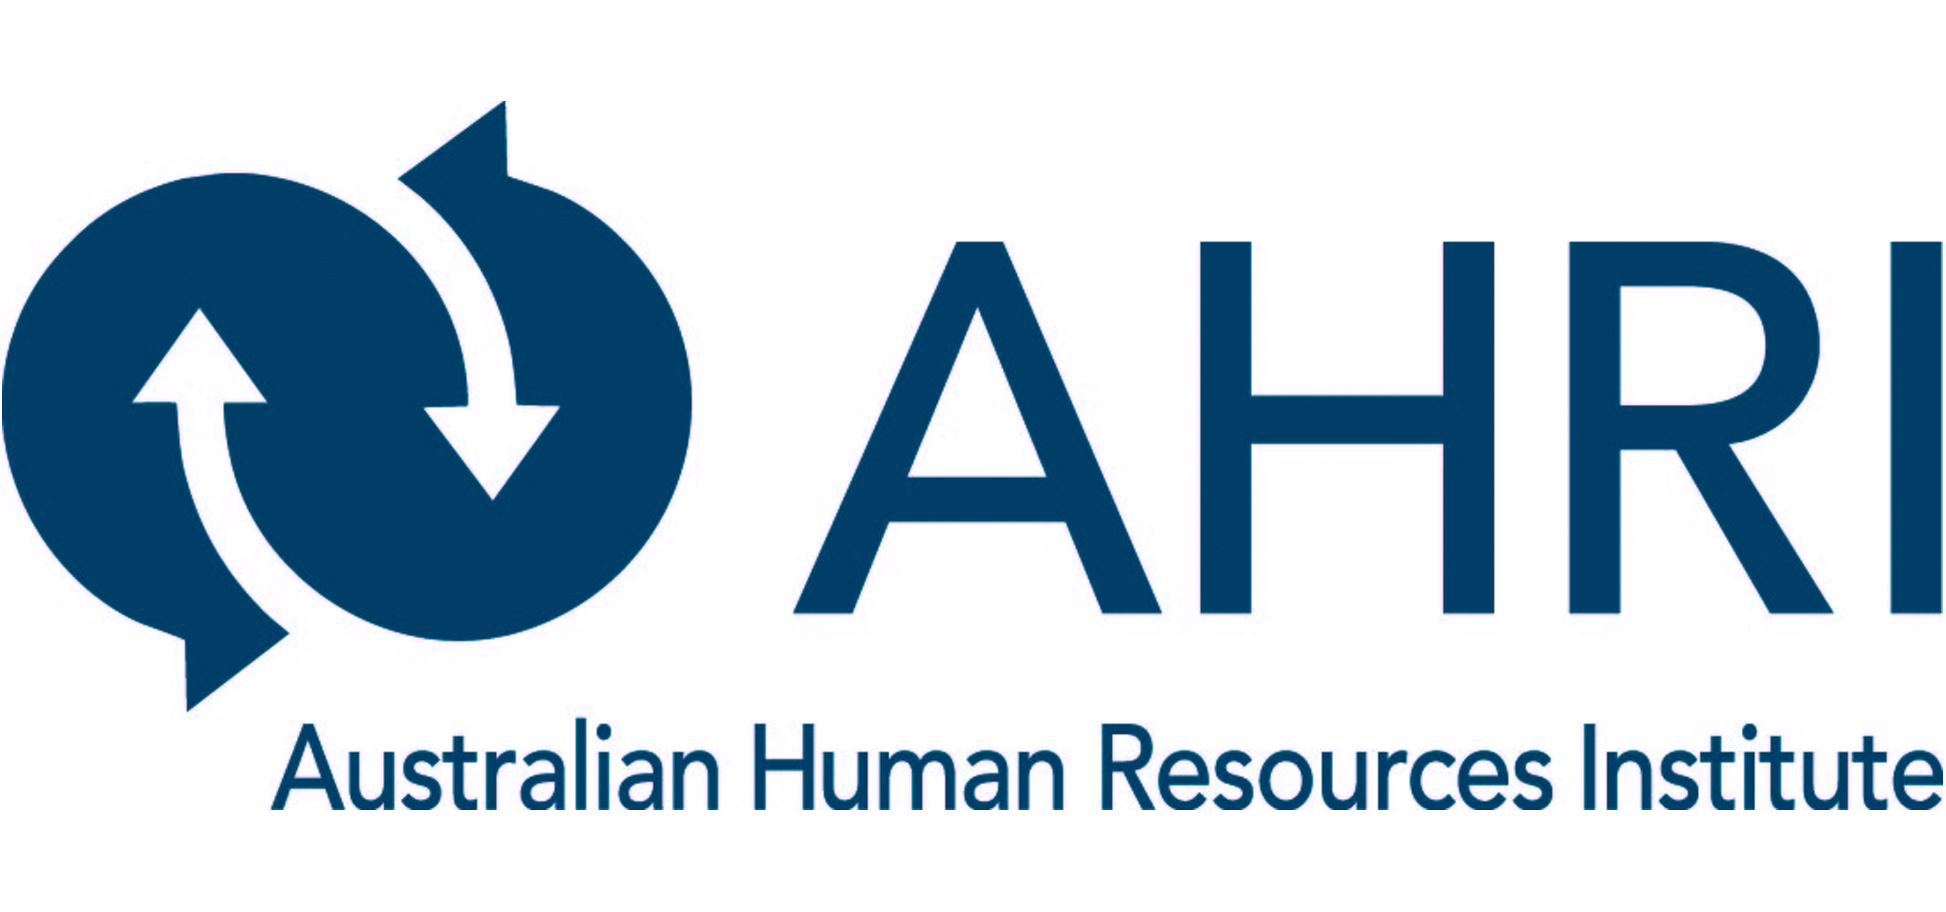 Australian Human Resources Institute (AHRI)